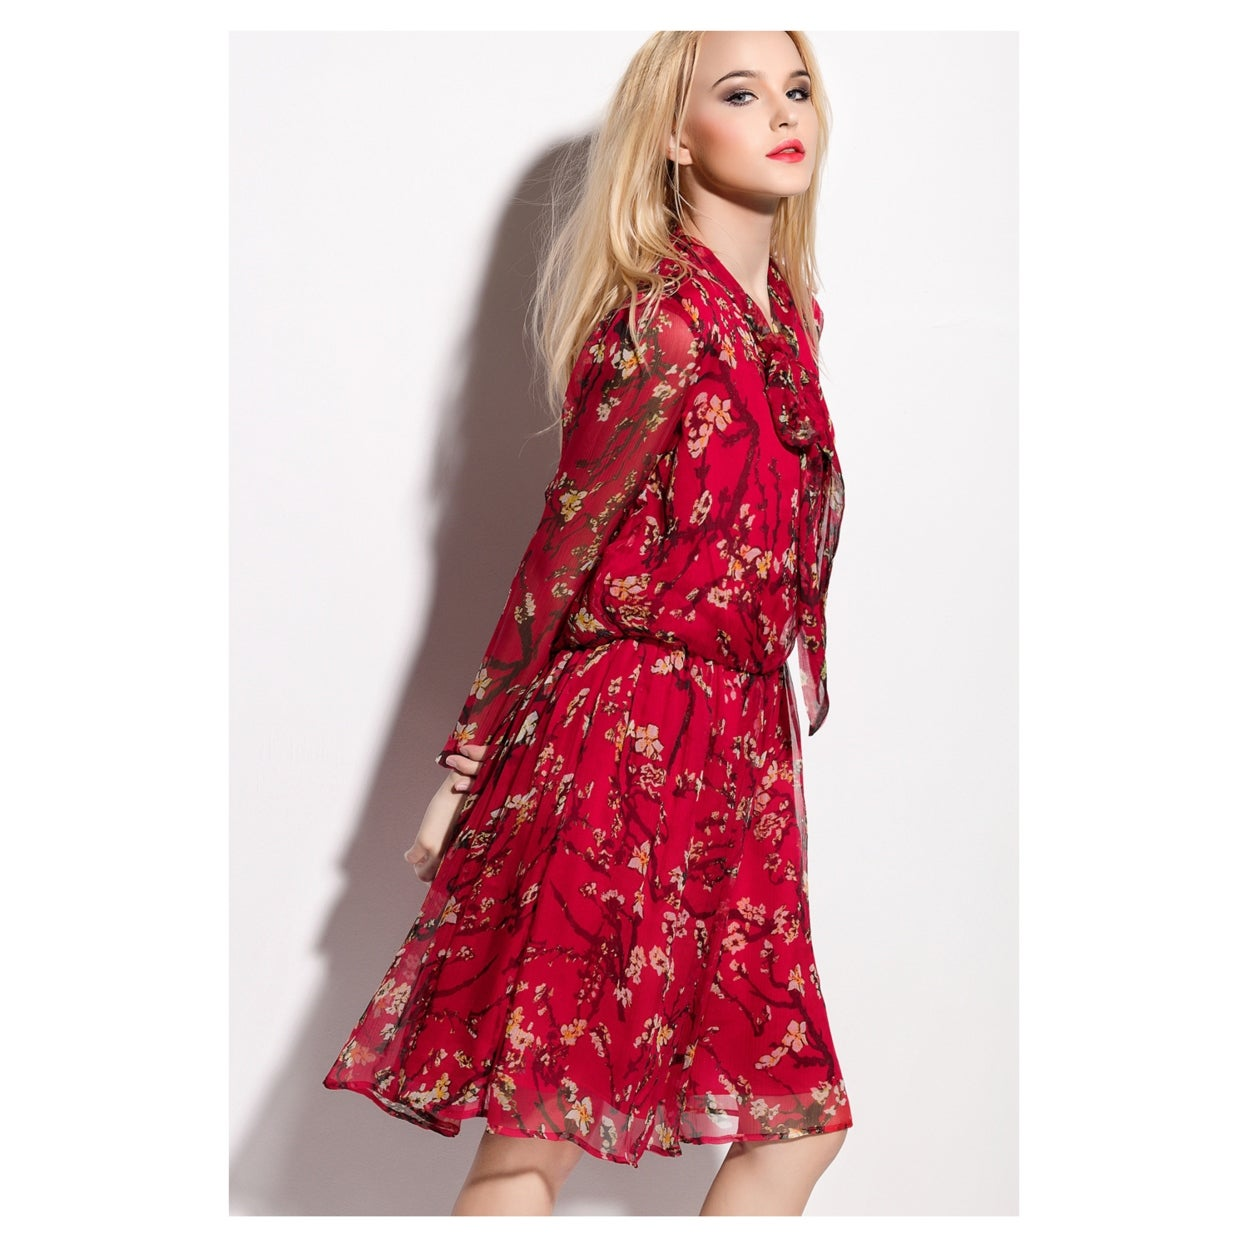 d6fa27abd2c4 Shop Red Floral Print Chiffon Overlay Knee Length Dress With Long Sleeves -  On Sale - Free Shipping Today - Overstock - 27073718